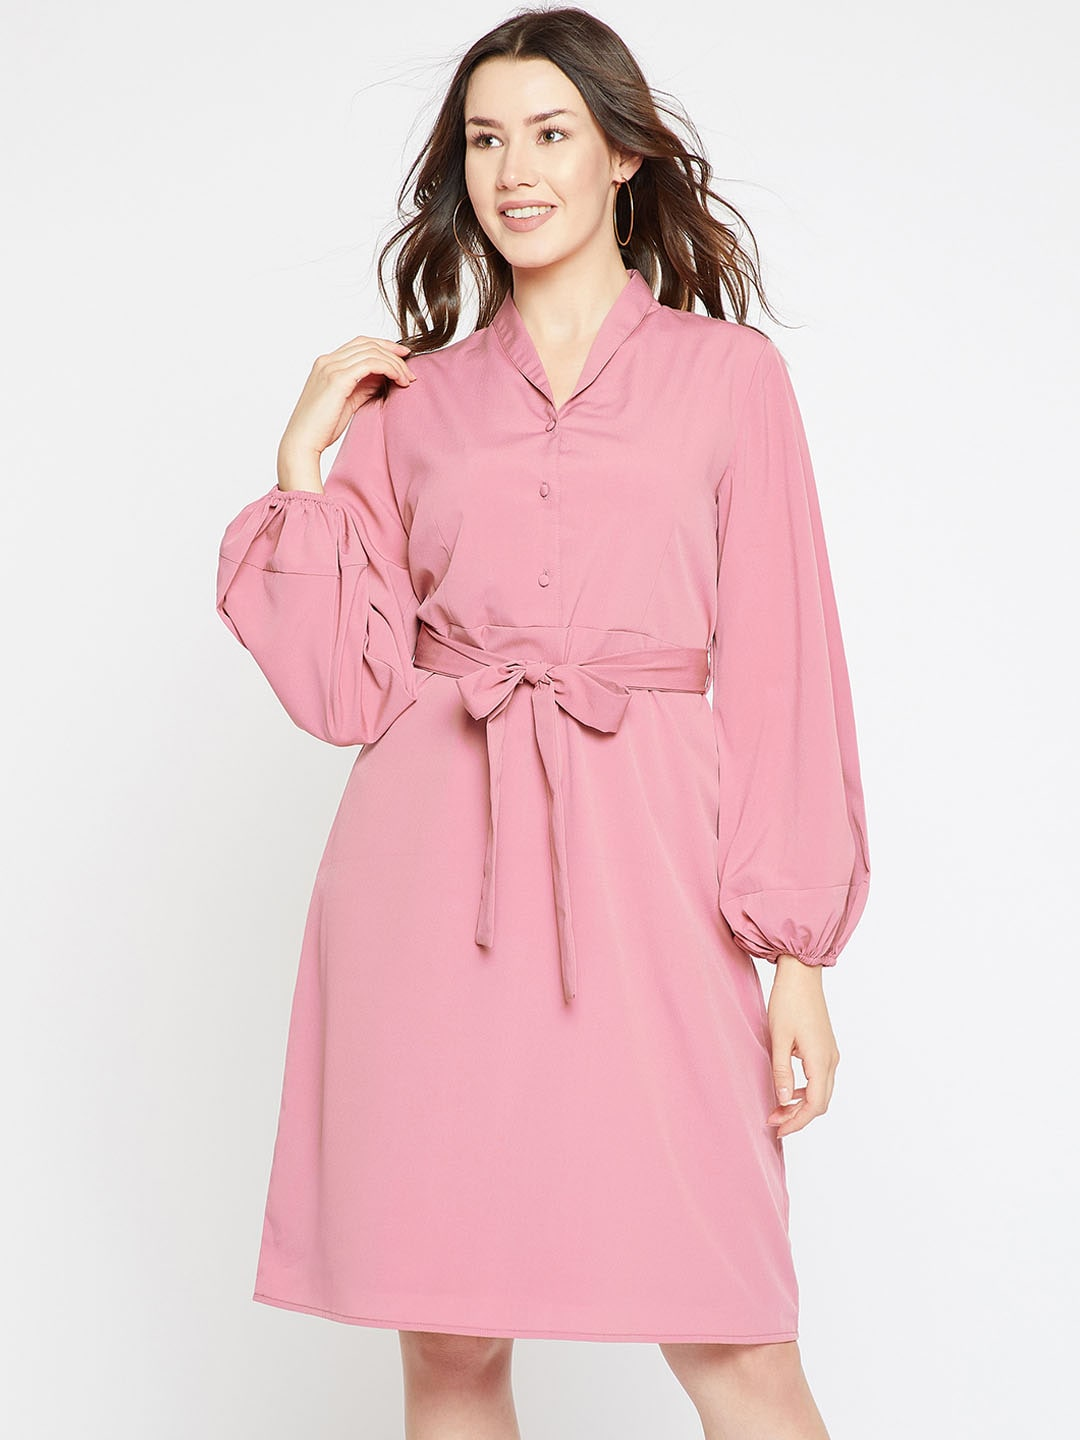 Marie claire location robe